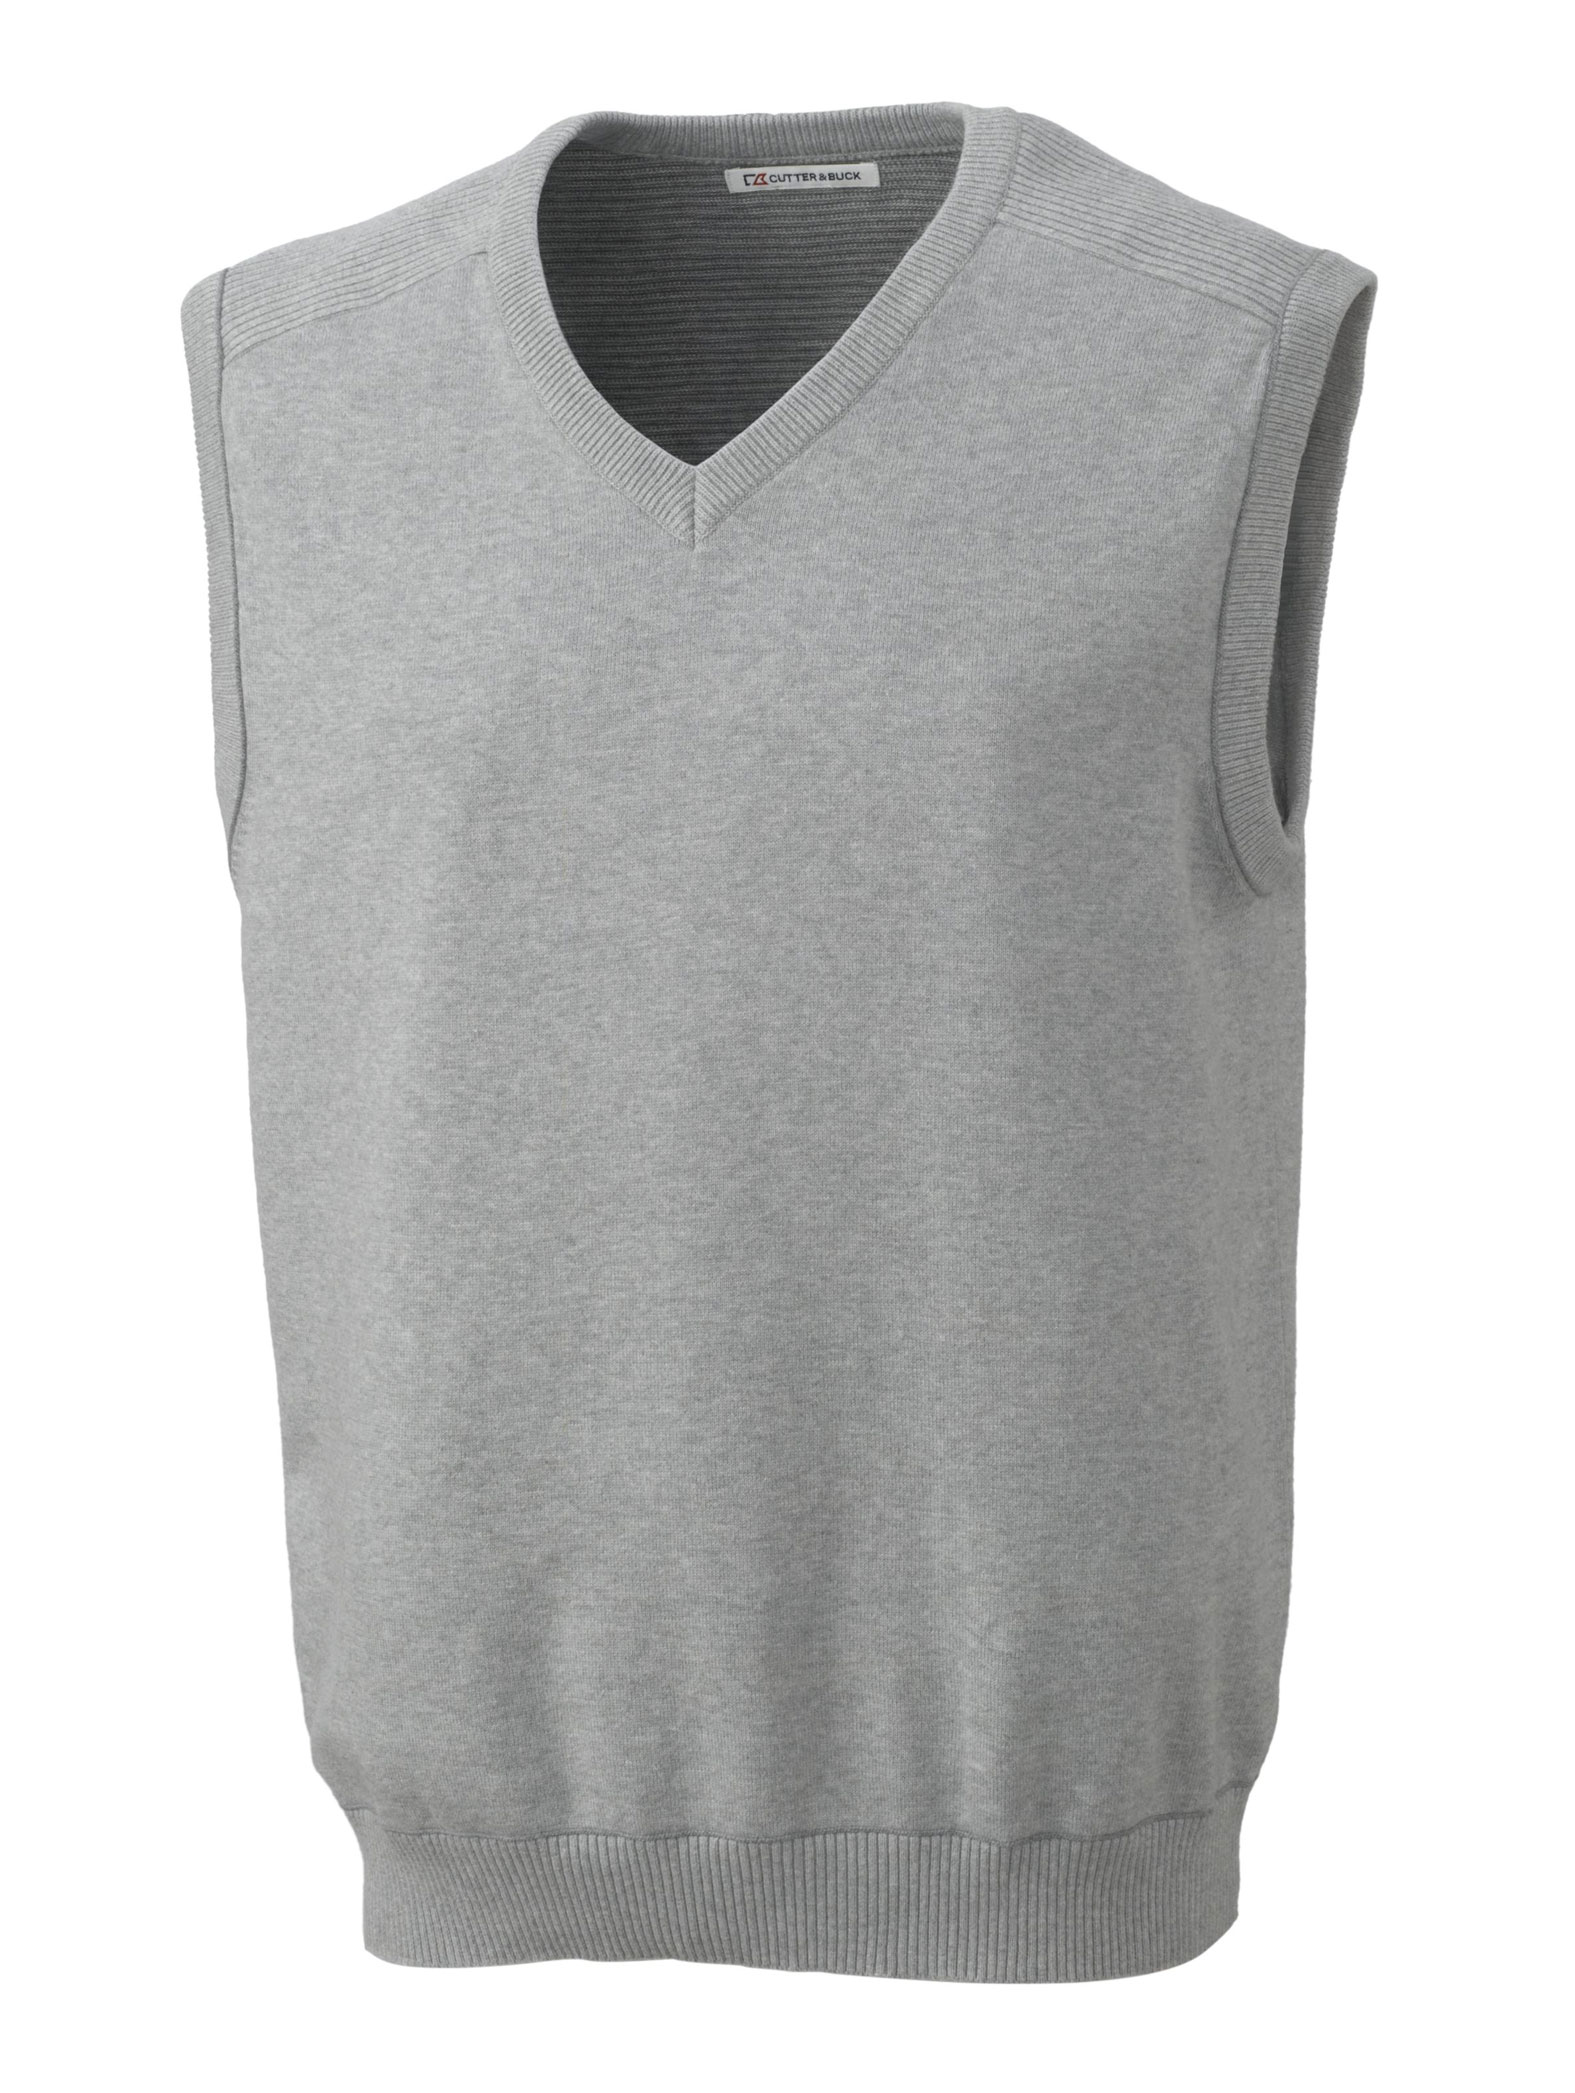 Big and Tall Mens Broadview V-neck Sweater Vest